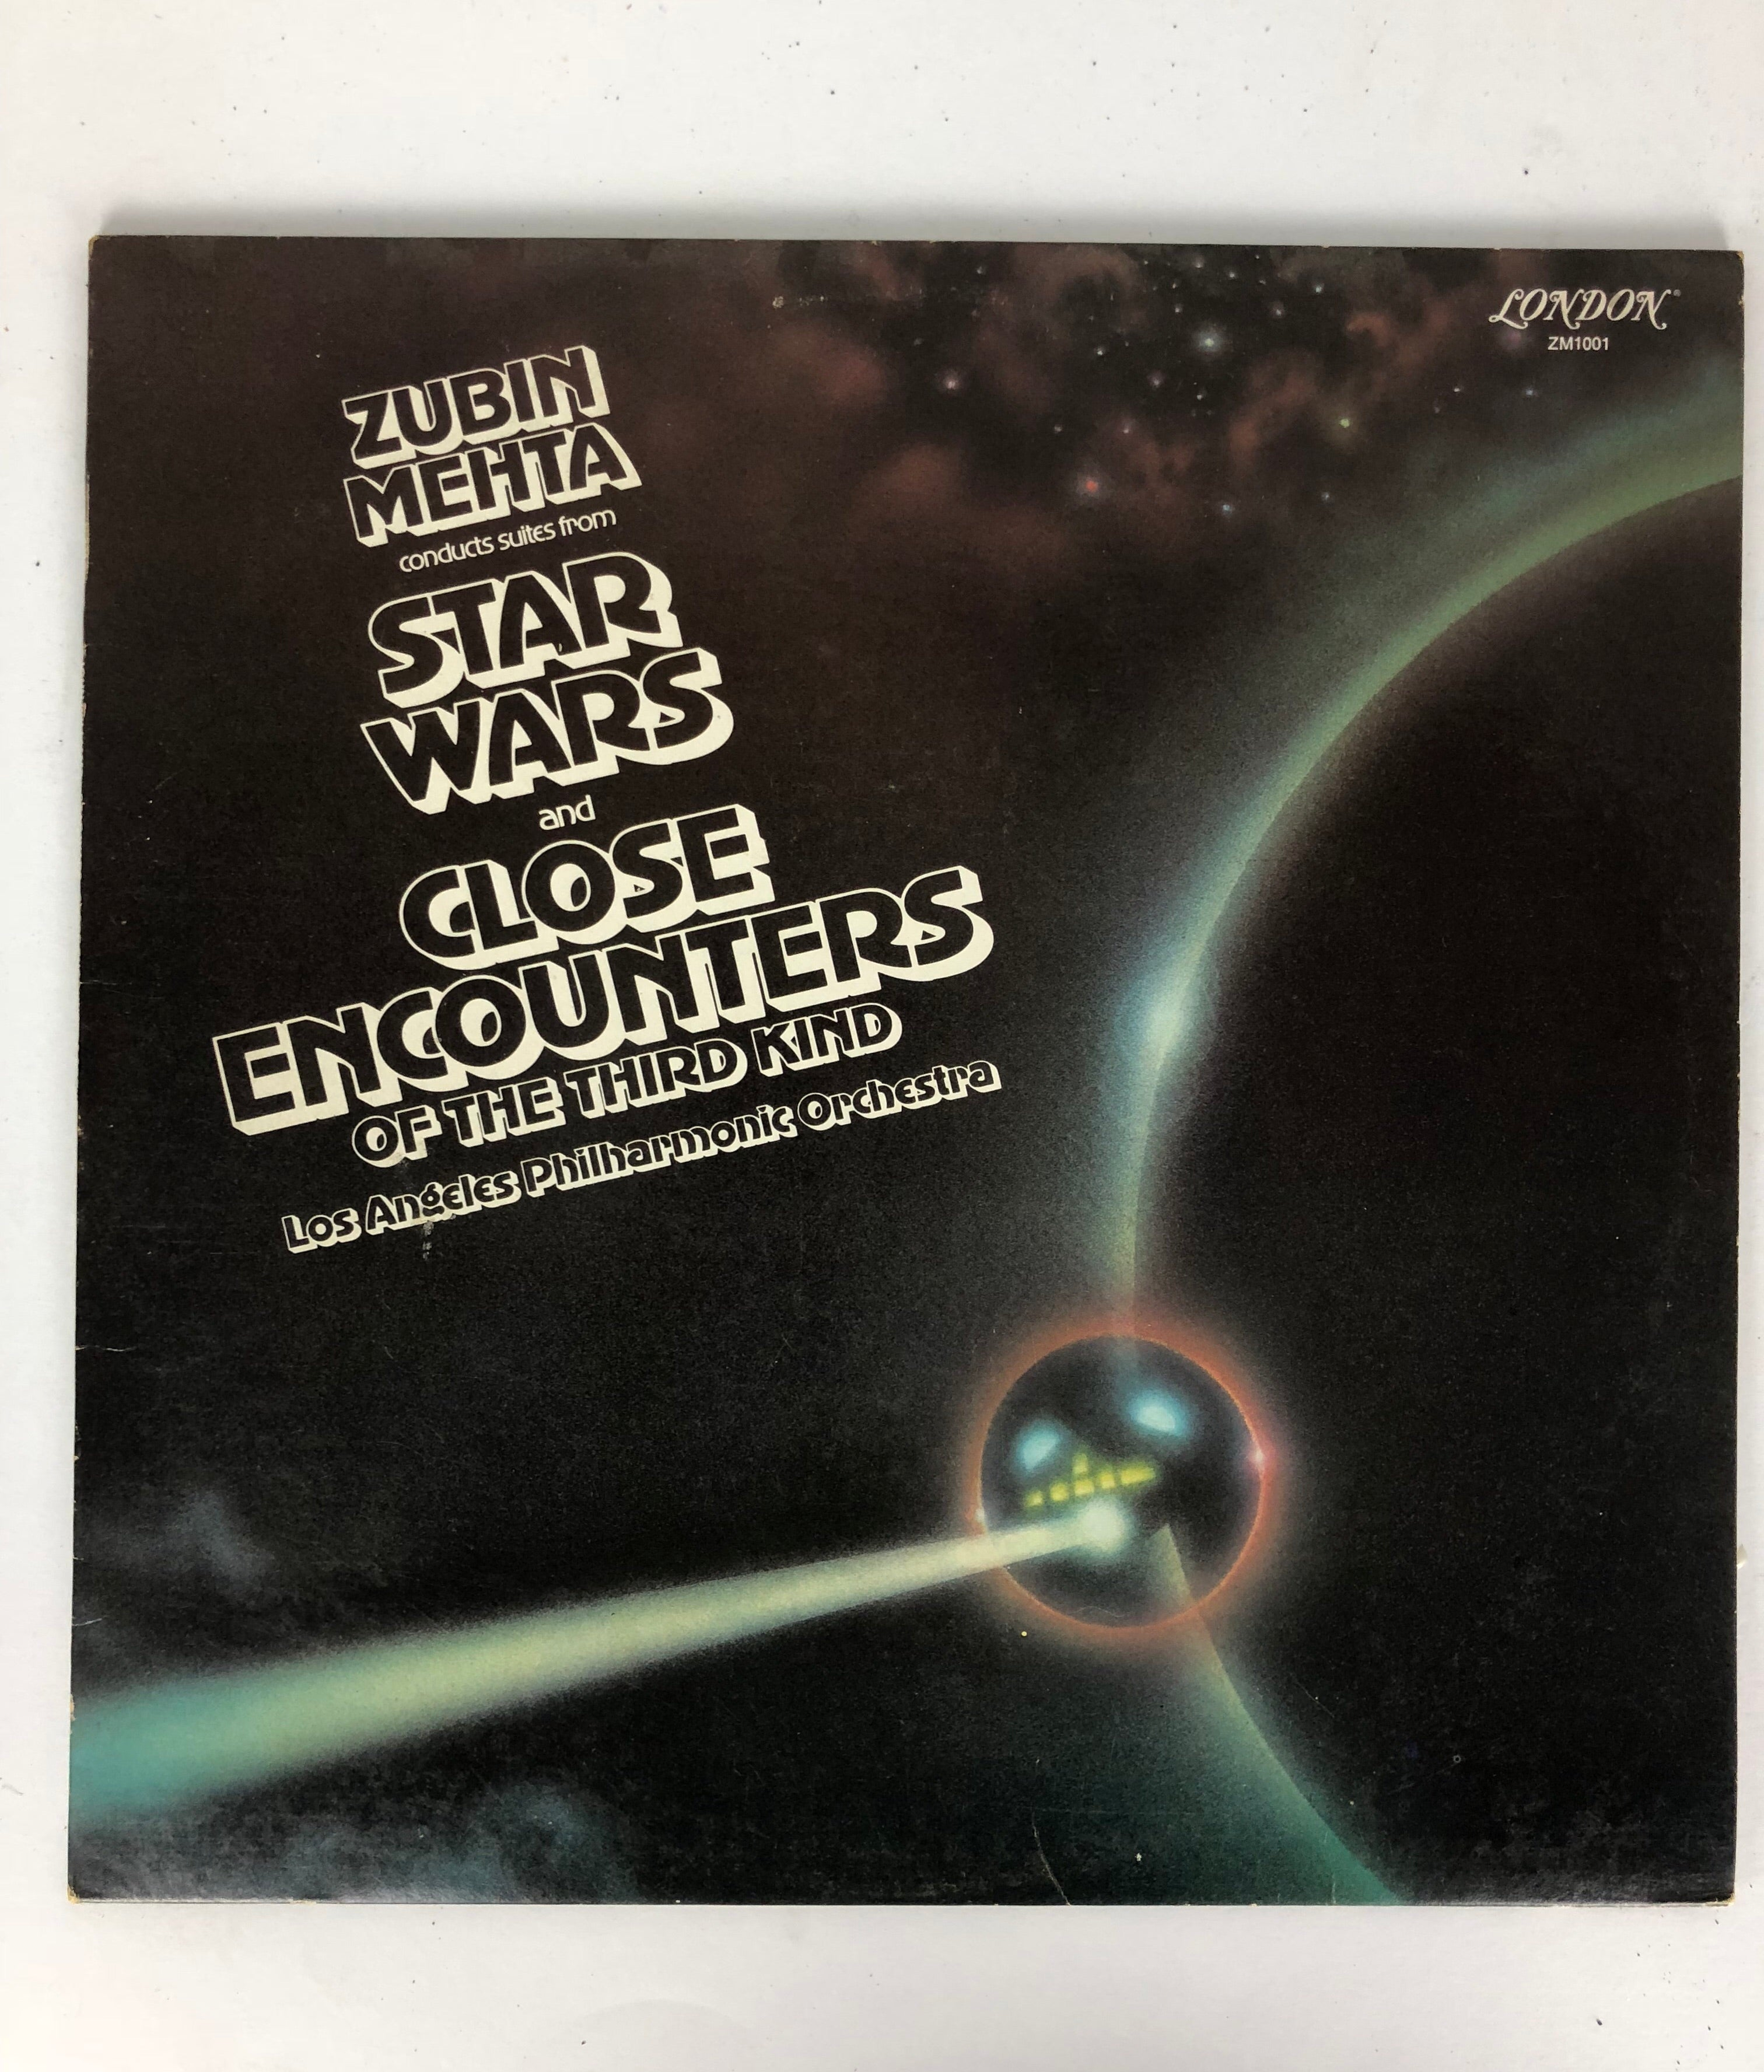 ZUBIN MEHTA CONDUCTS FROM STAR WARS & CLOSE ENCOUNTERS OF 3RD KIND ALBUM Vinyl